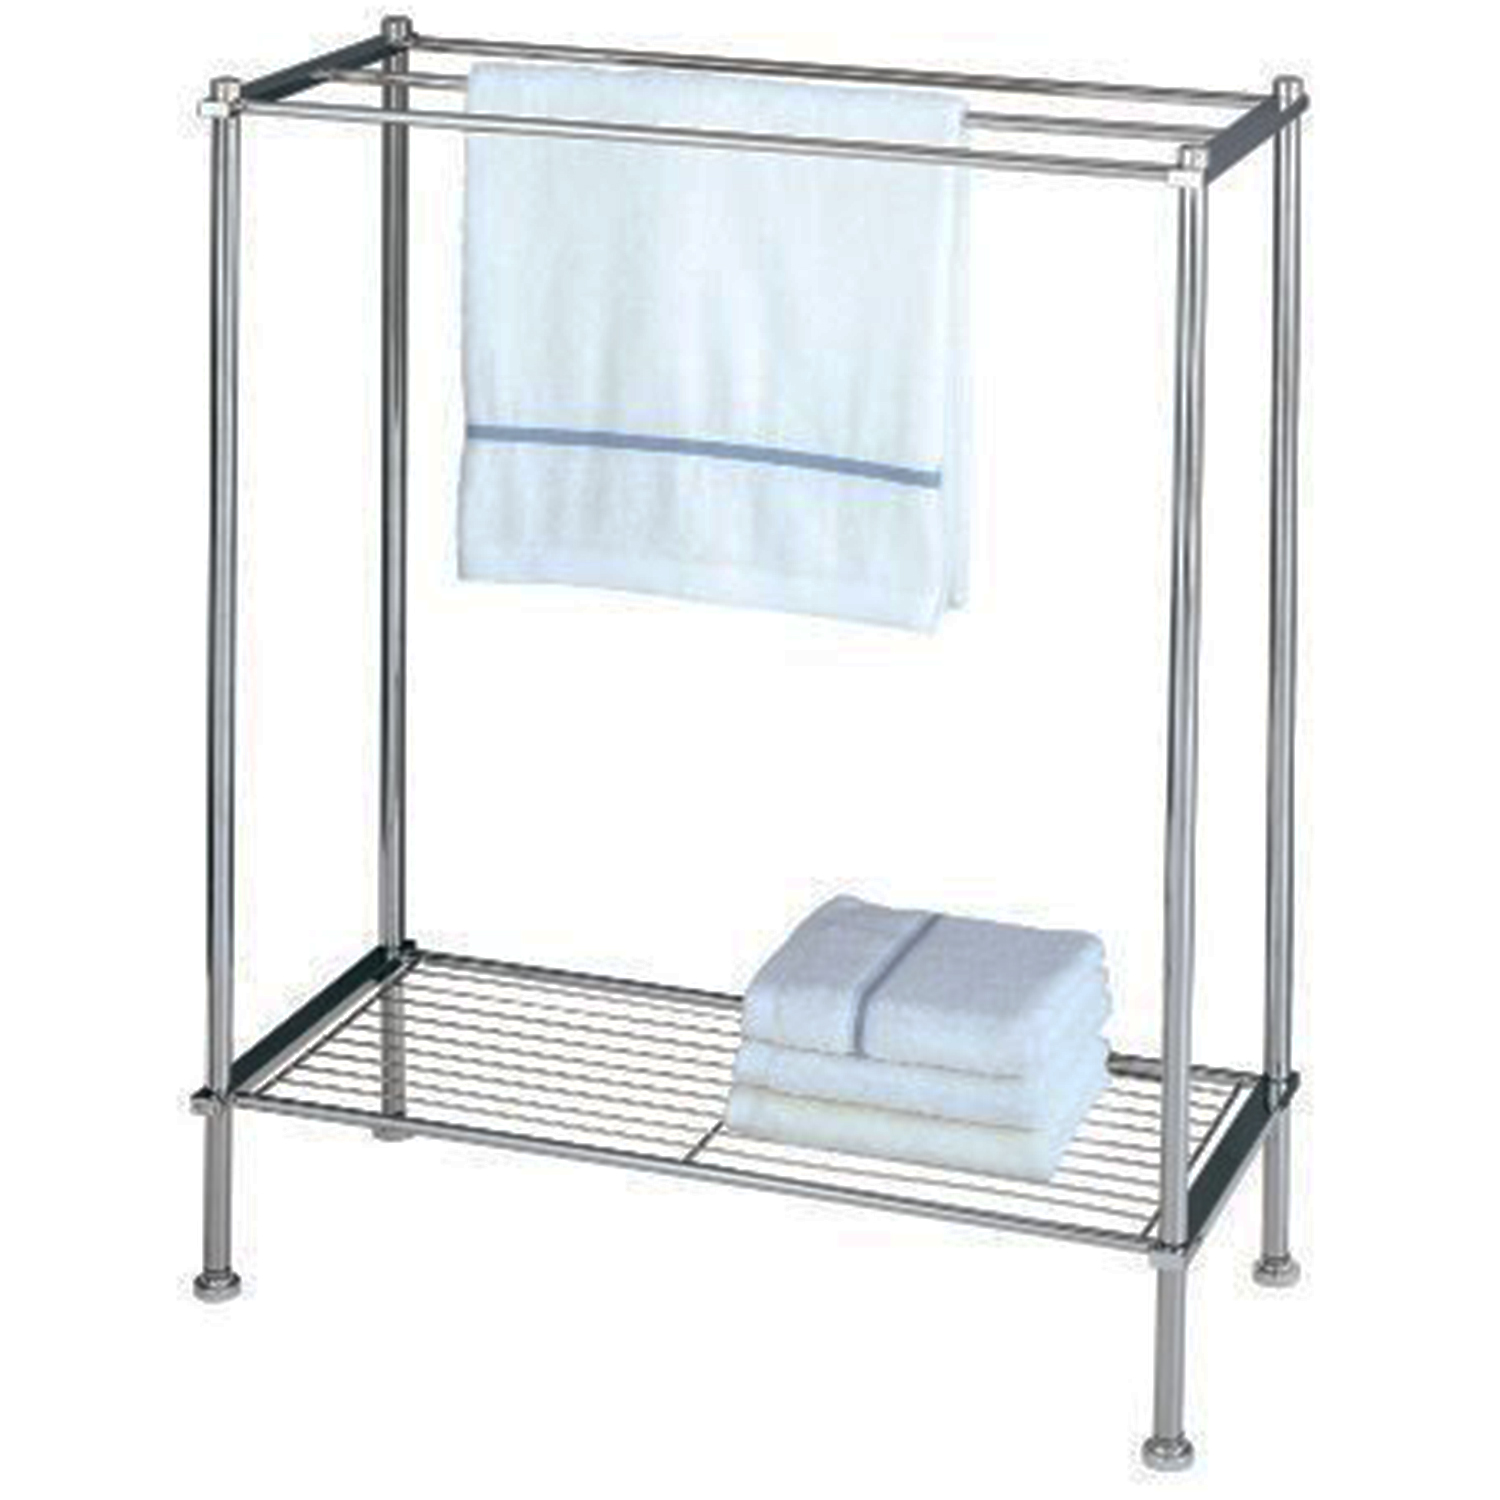 Bathroom Towel Stand Details About Free Standing Bathroom Towel Rack Metal Towel 3 Bar Stand Drying Shelf Chrome